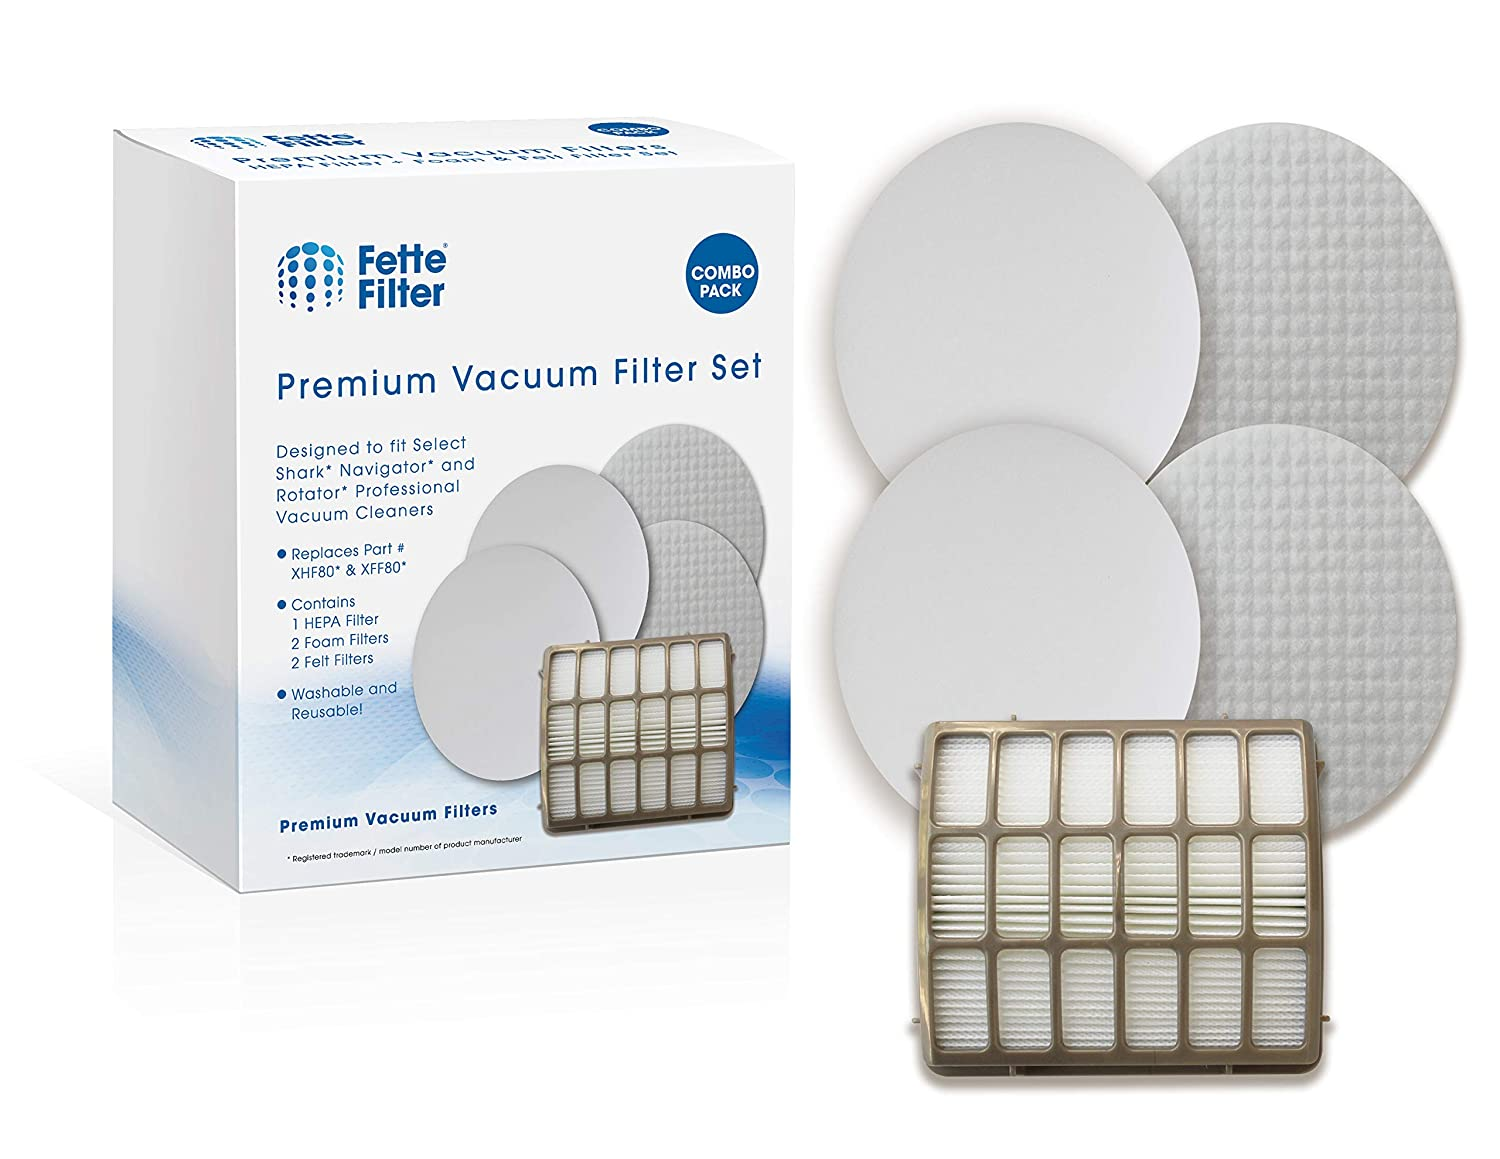 Fette Filter - Vacuum Filters Compatible with Shark Navigator Professional NV70, NV80, NV90, NV95, UV420 Vacuums. Compare to Part # XFF80 & XHF80. 1 HEPA Filter Plus 2 Foam & Felt Filter Kit.